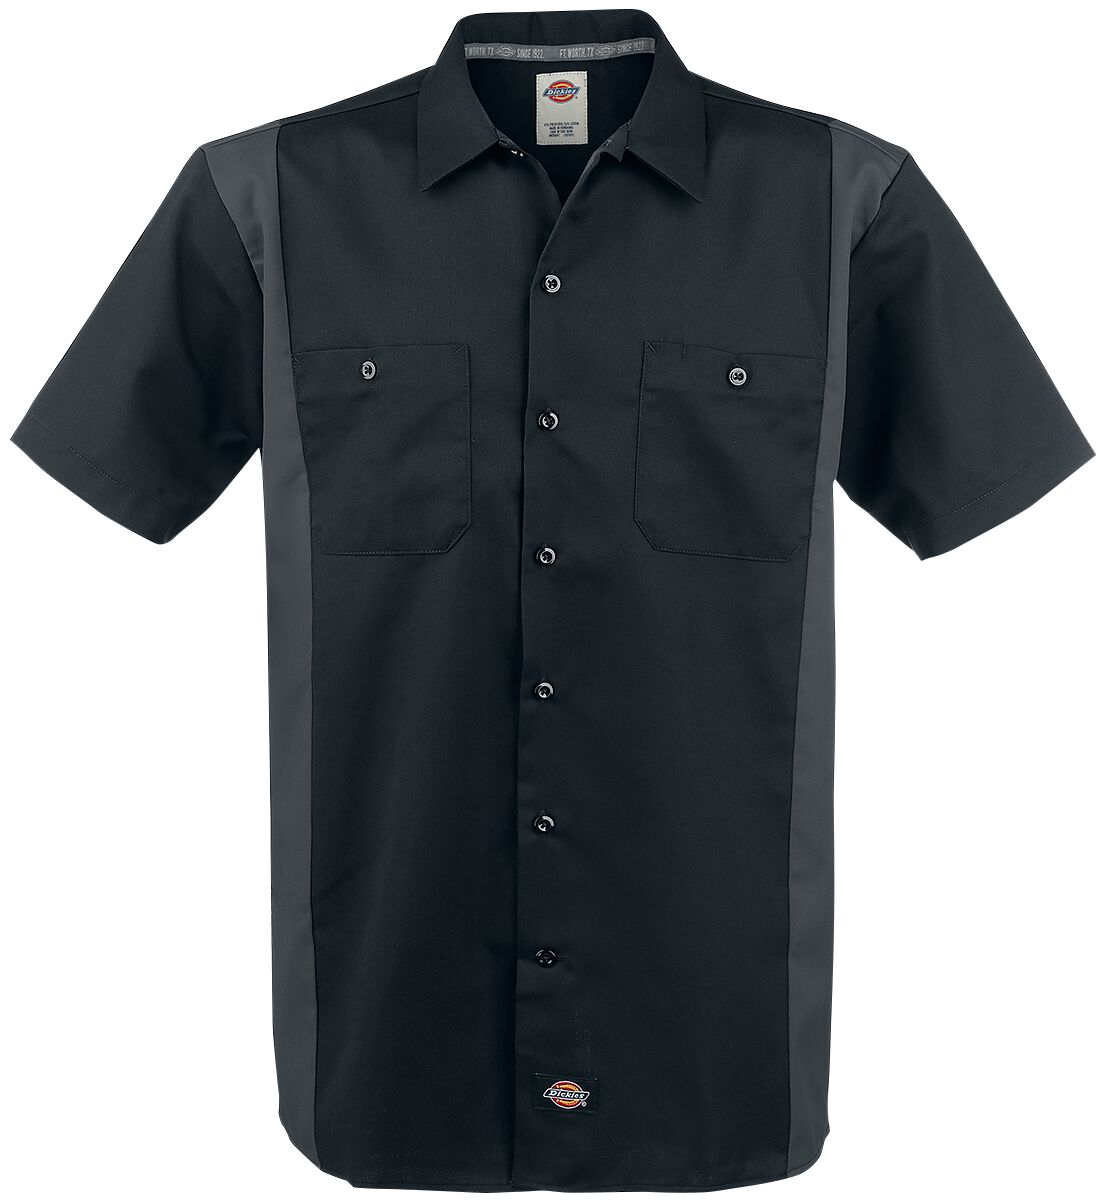 Image of   Dickies Two Tone Work Shirt Skjorte sort-grå